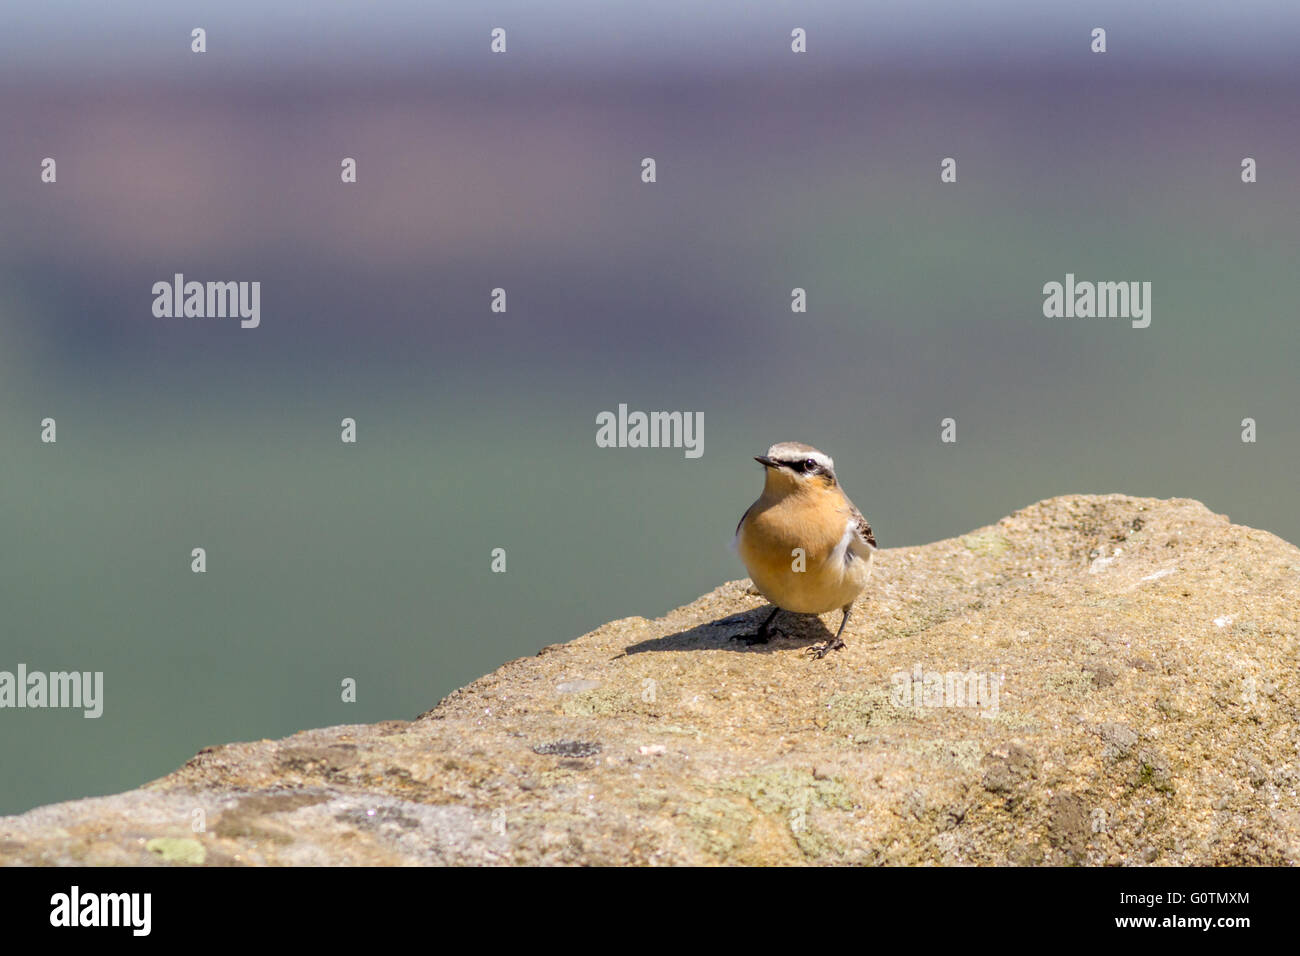 Wheatears, summer visitors to the UK, have returned to the uplands. Yorkshire, UK - Stock Image